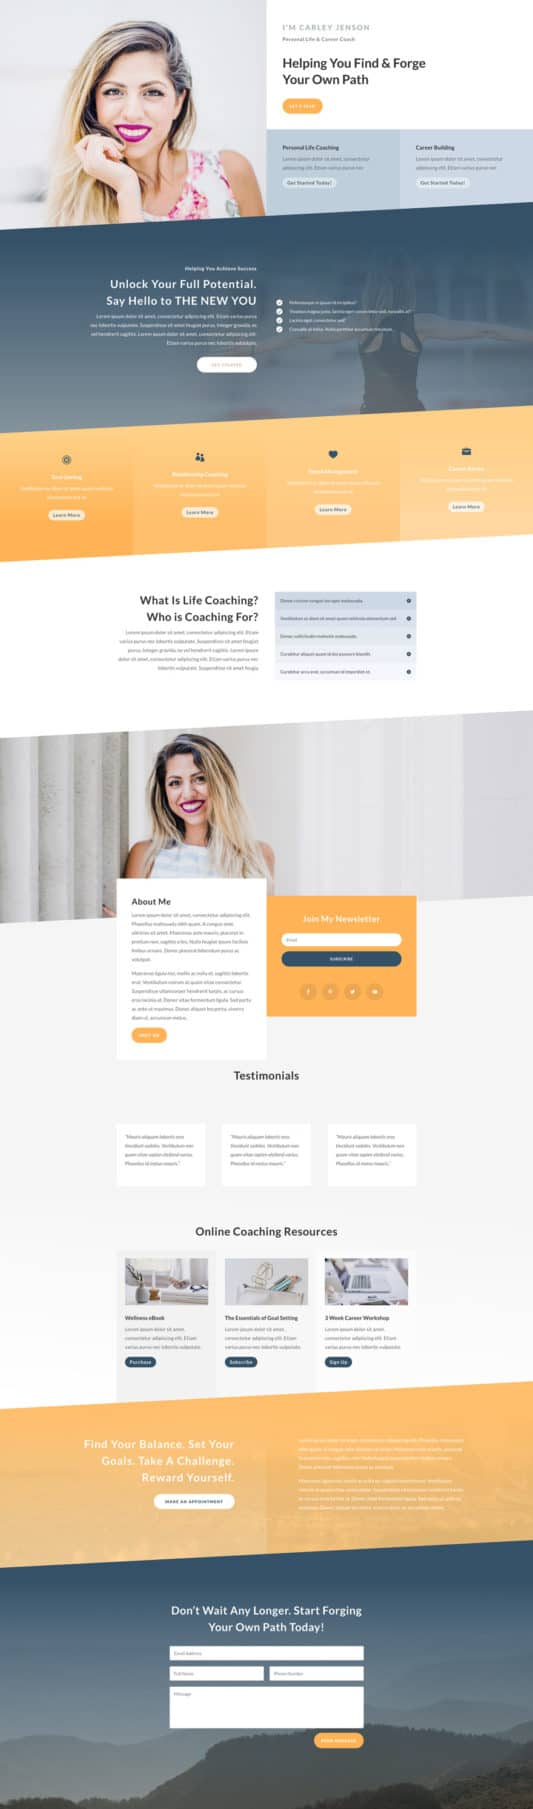 The Life Coach Page Style: Homepage Design 1